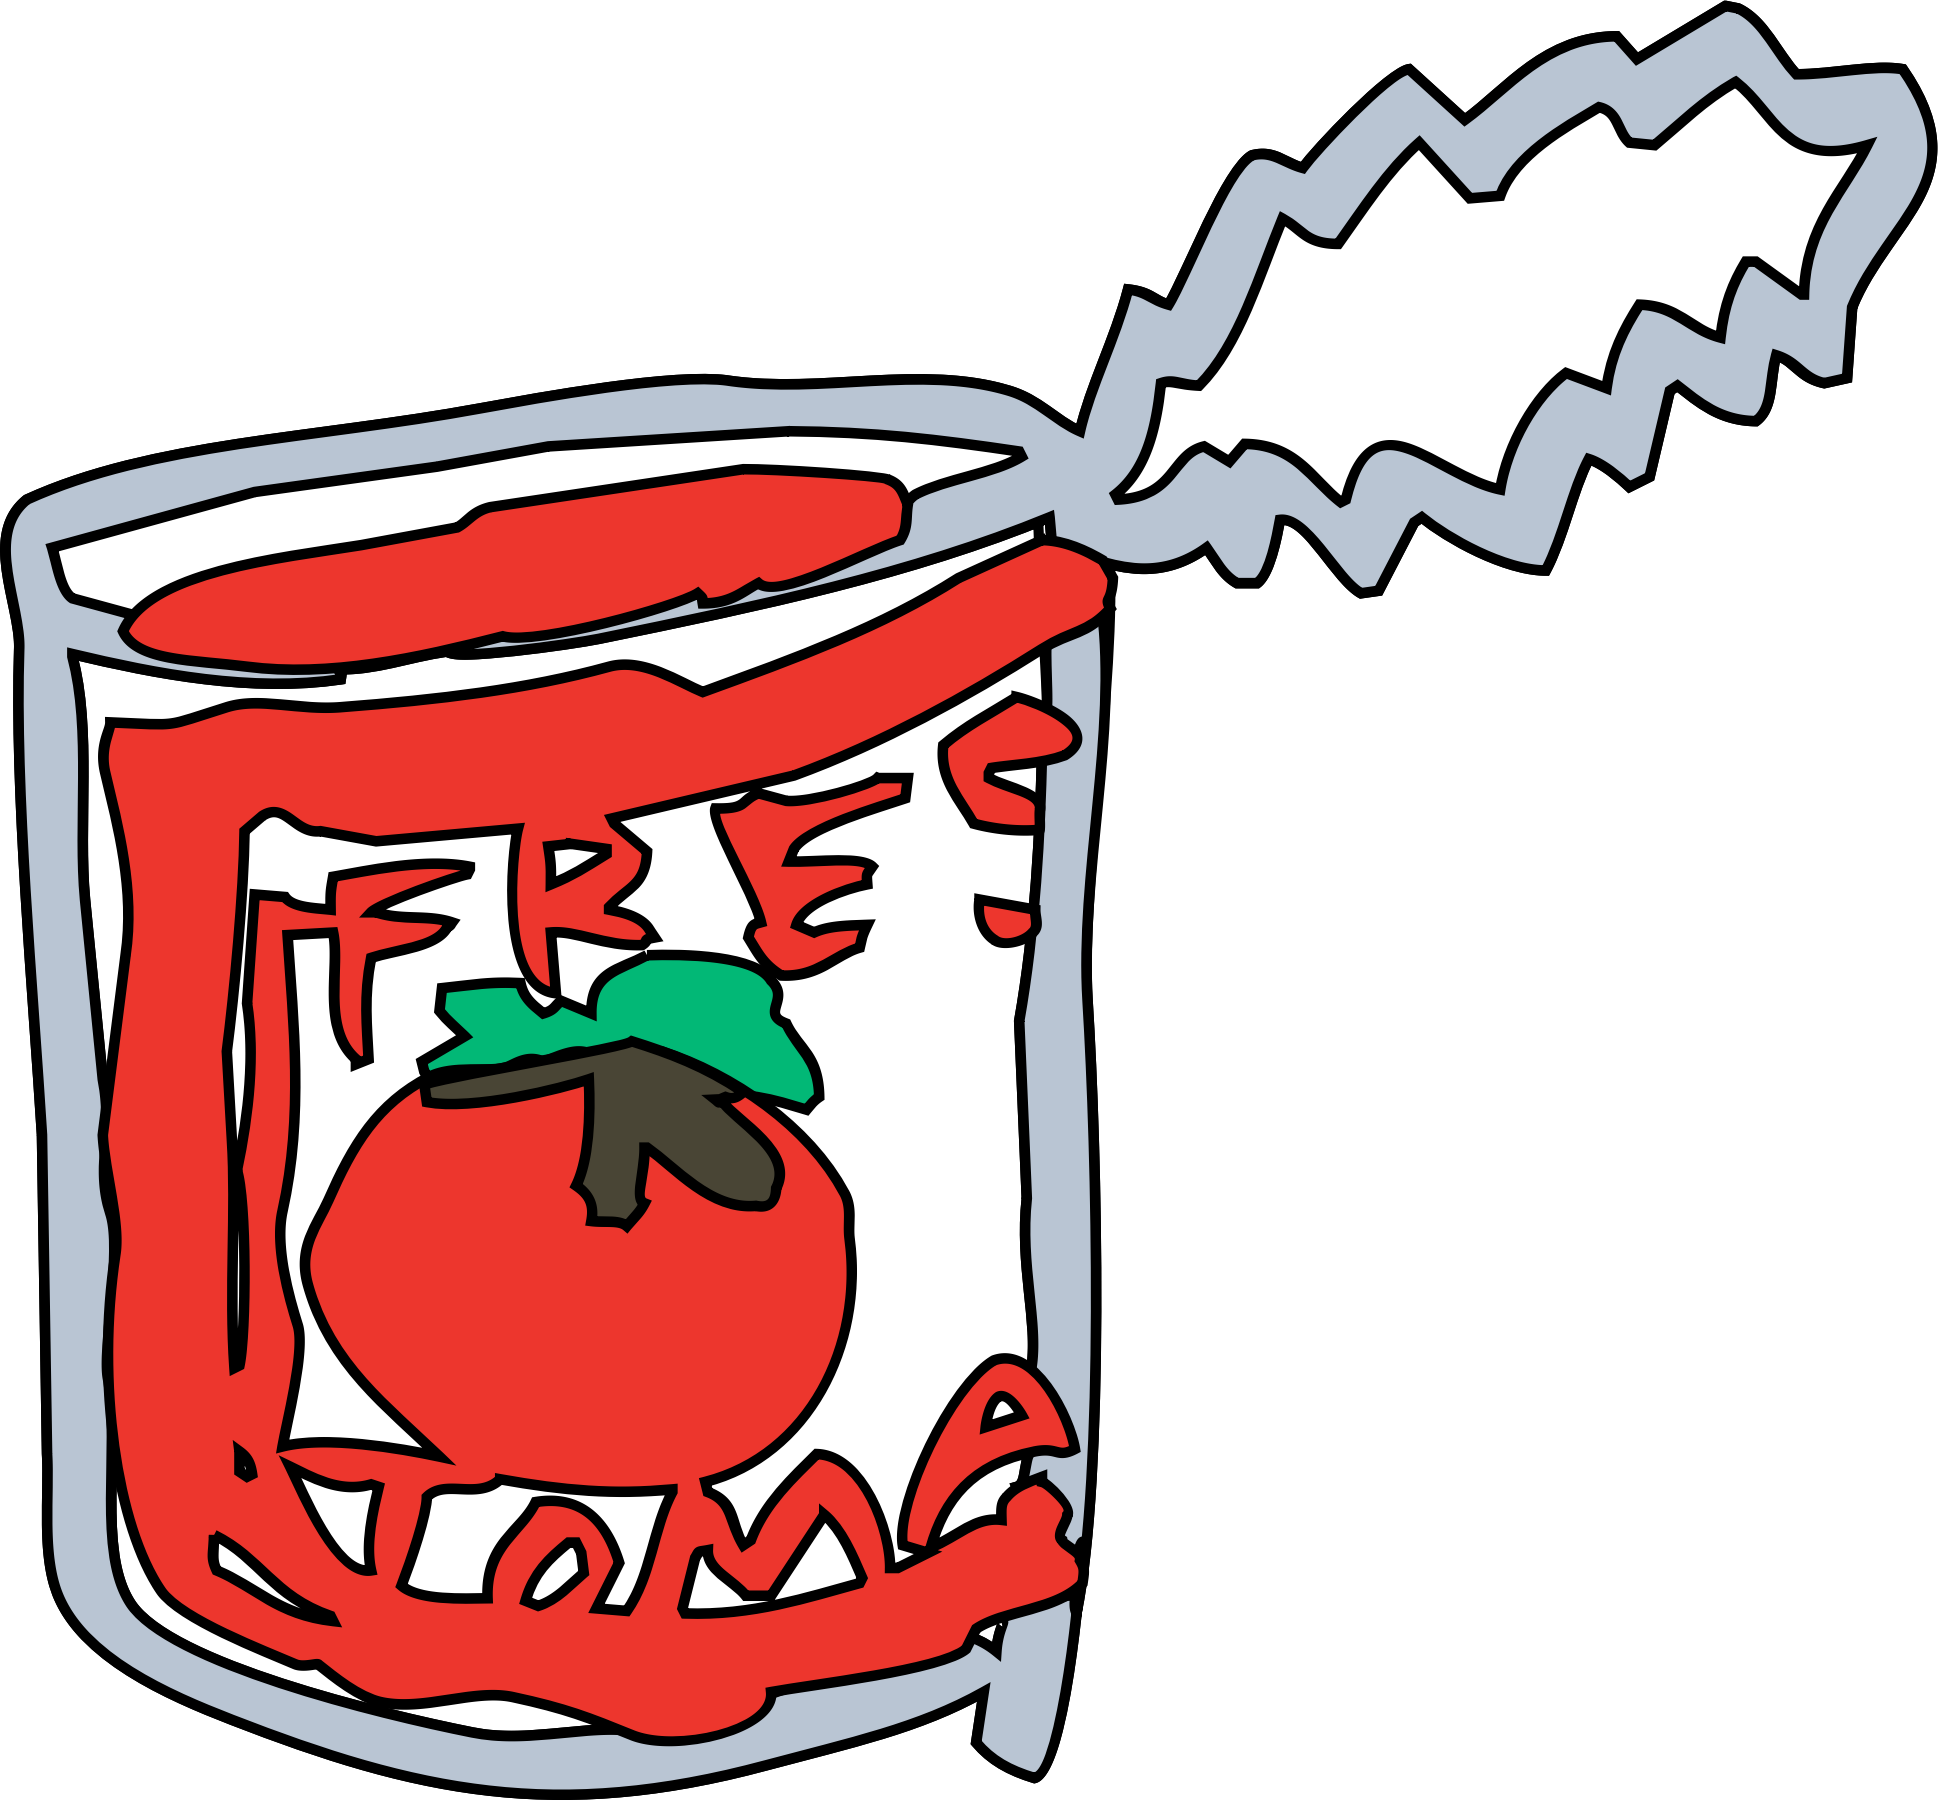 Tomatoes canned tomato